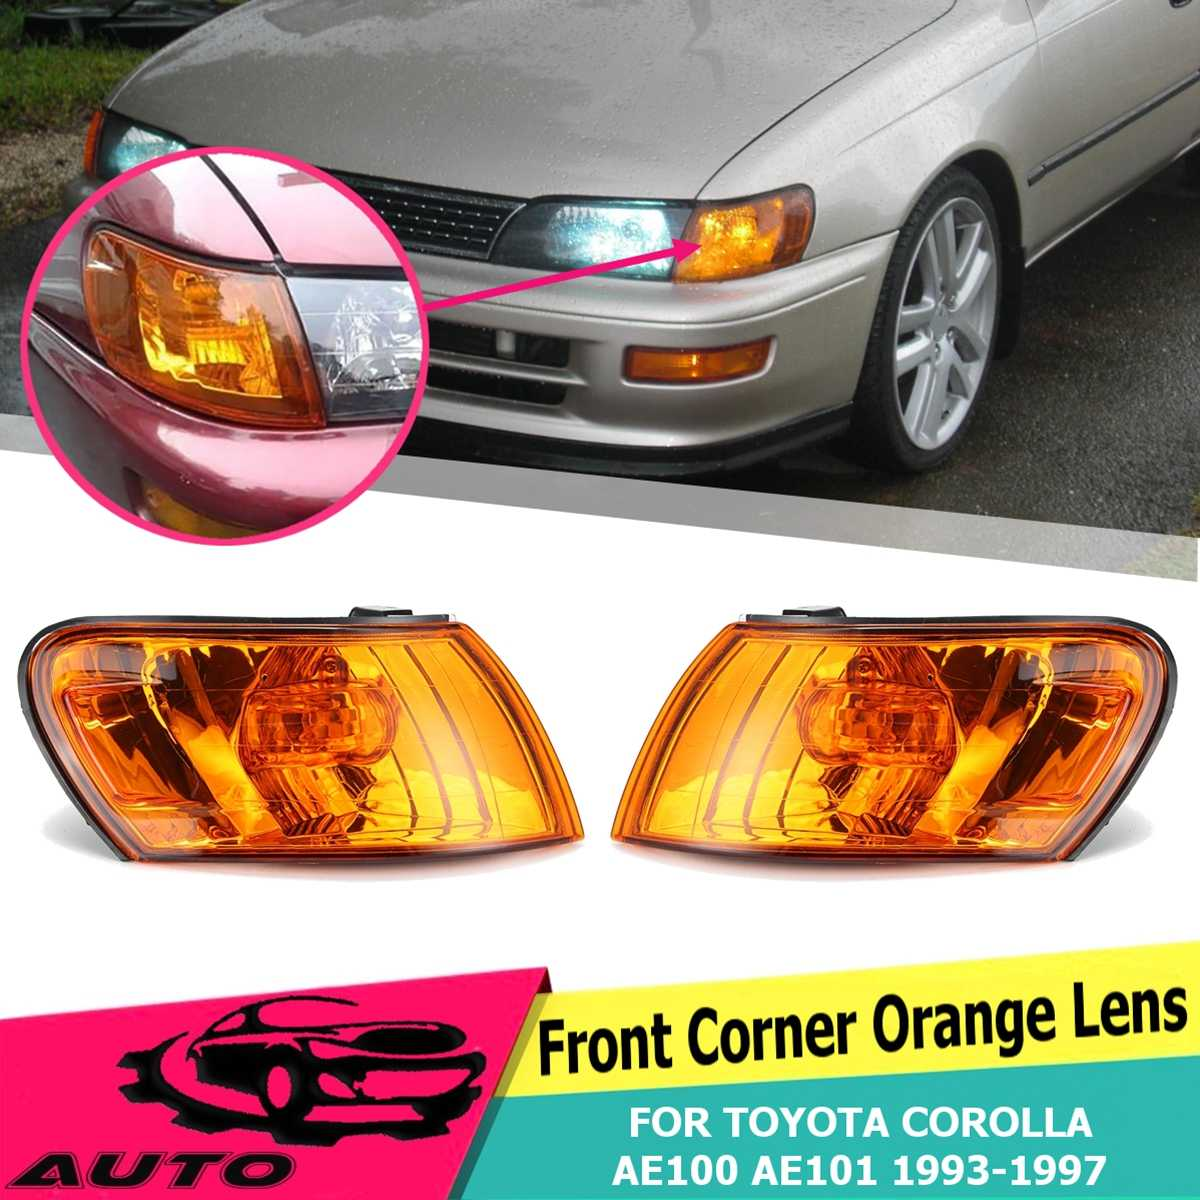 Glass-Lamp AE101 E100 1993 1996 1995 1994 Toyota Corolla 1997 No-Bulb Front-Signal-Coner-Light